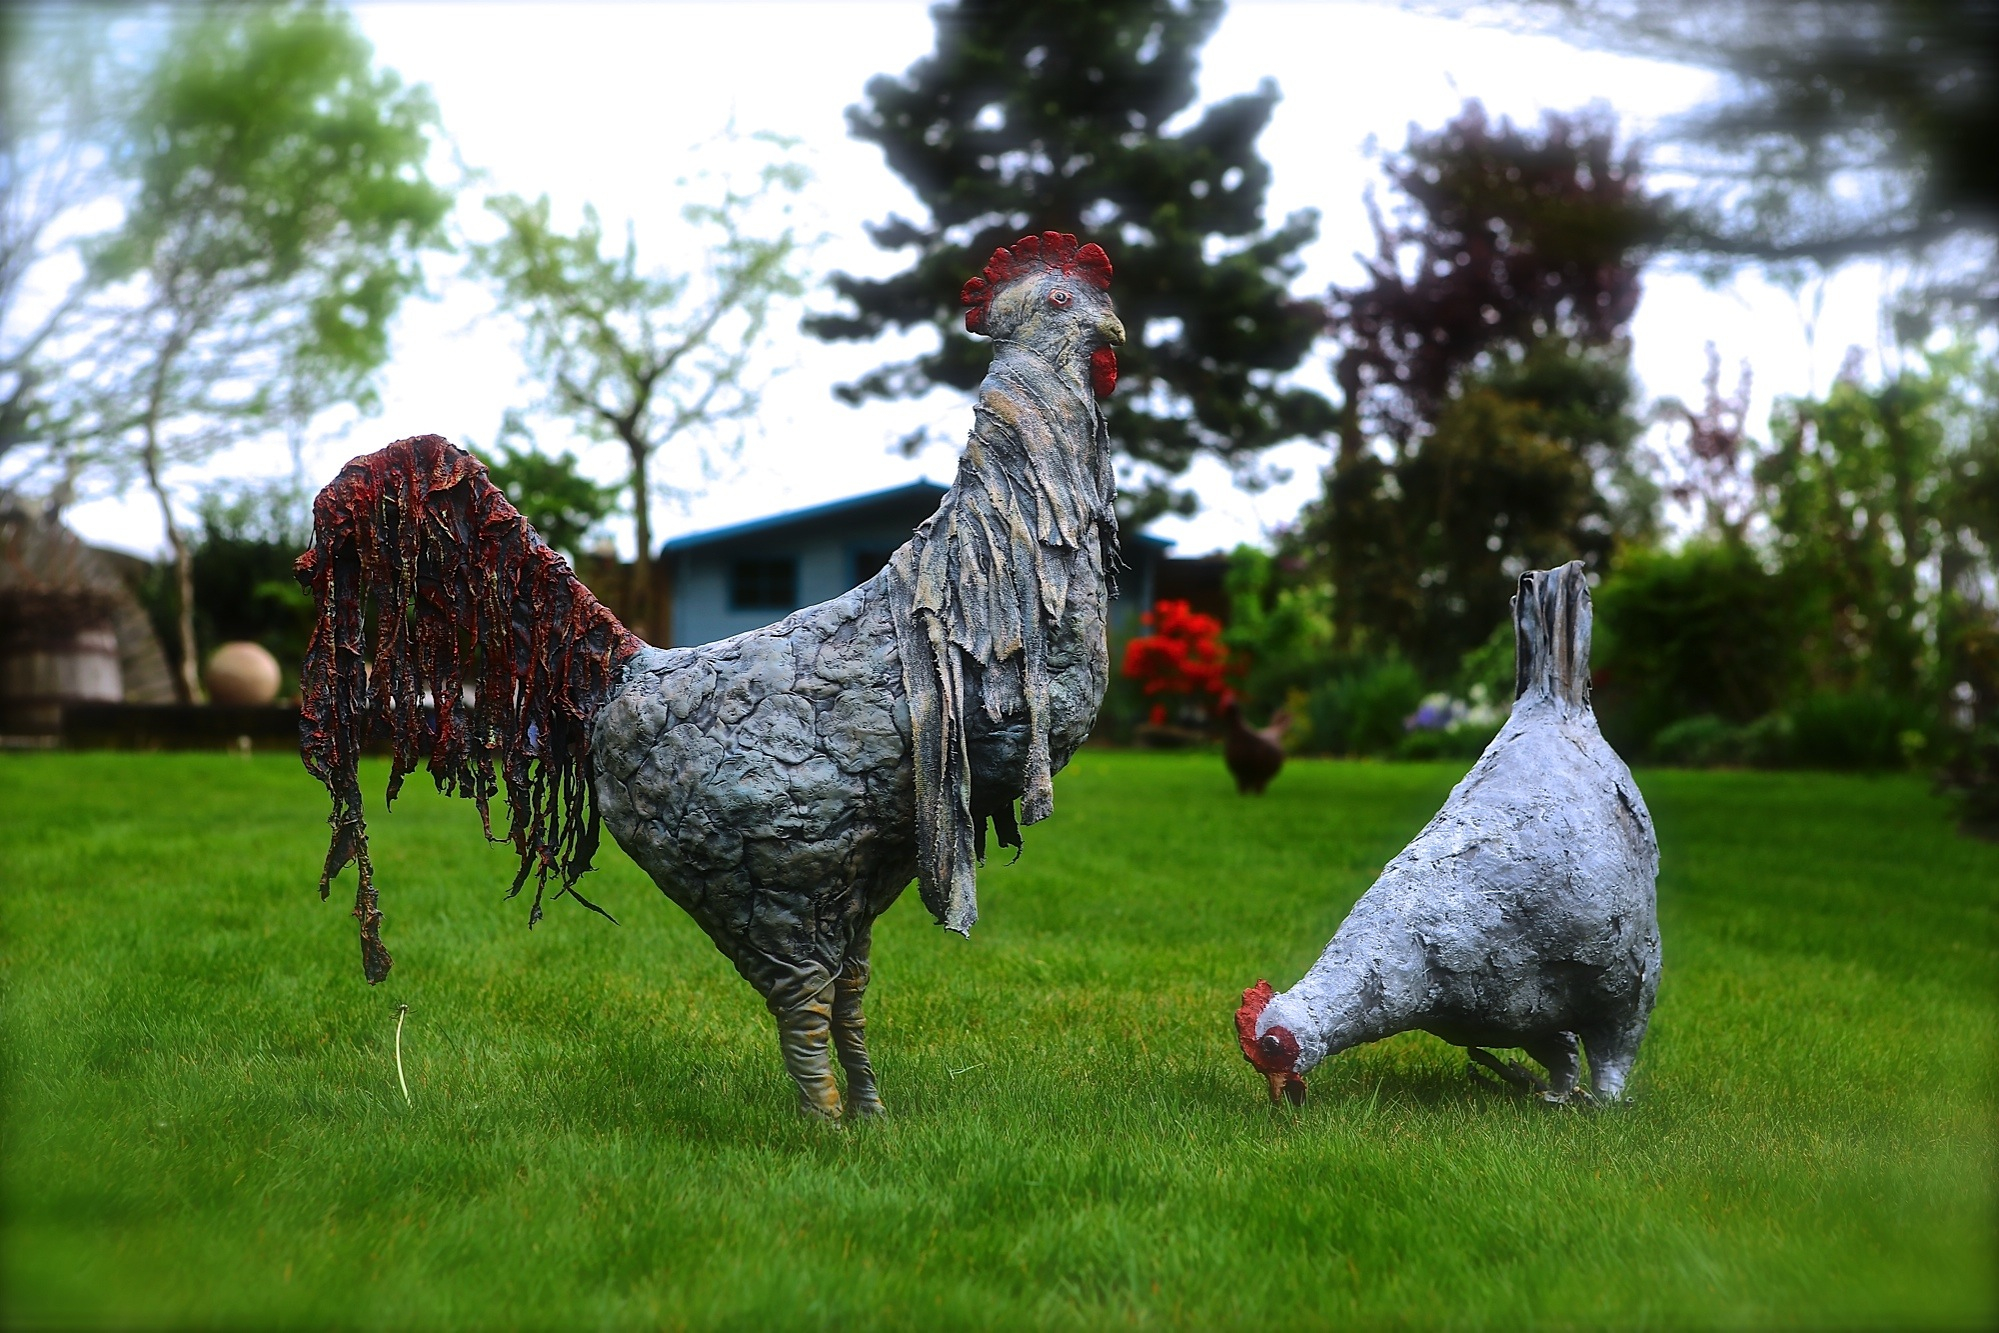 Big Garden Chickens